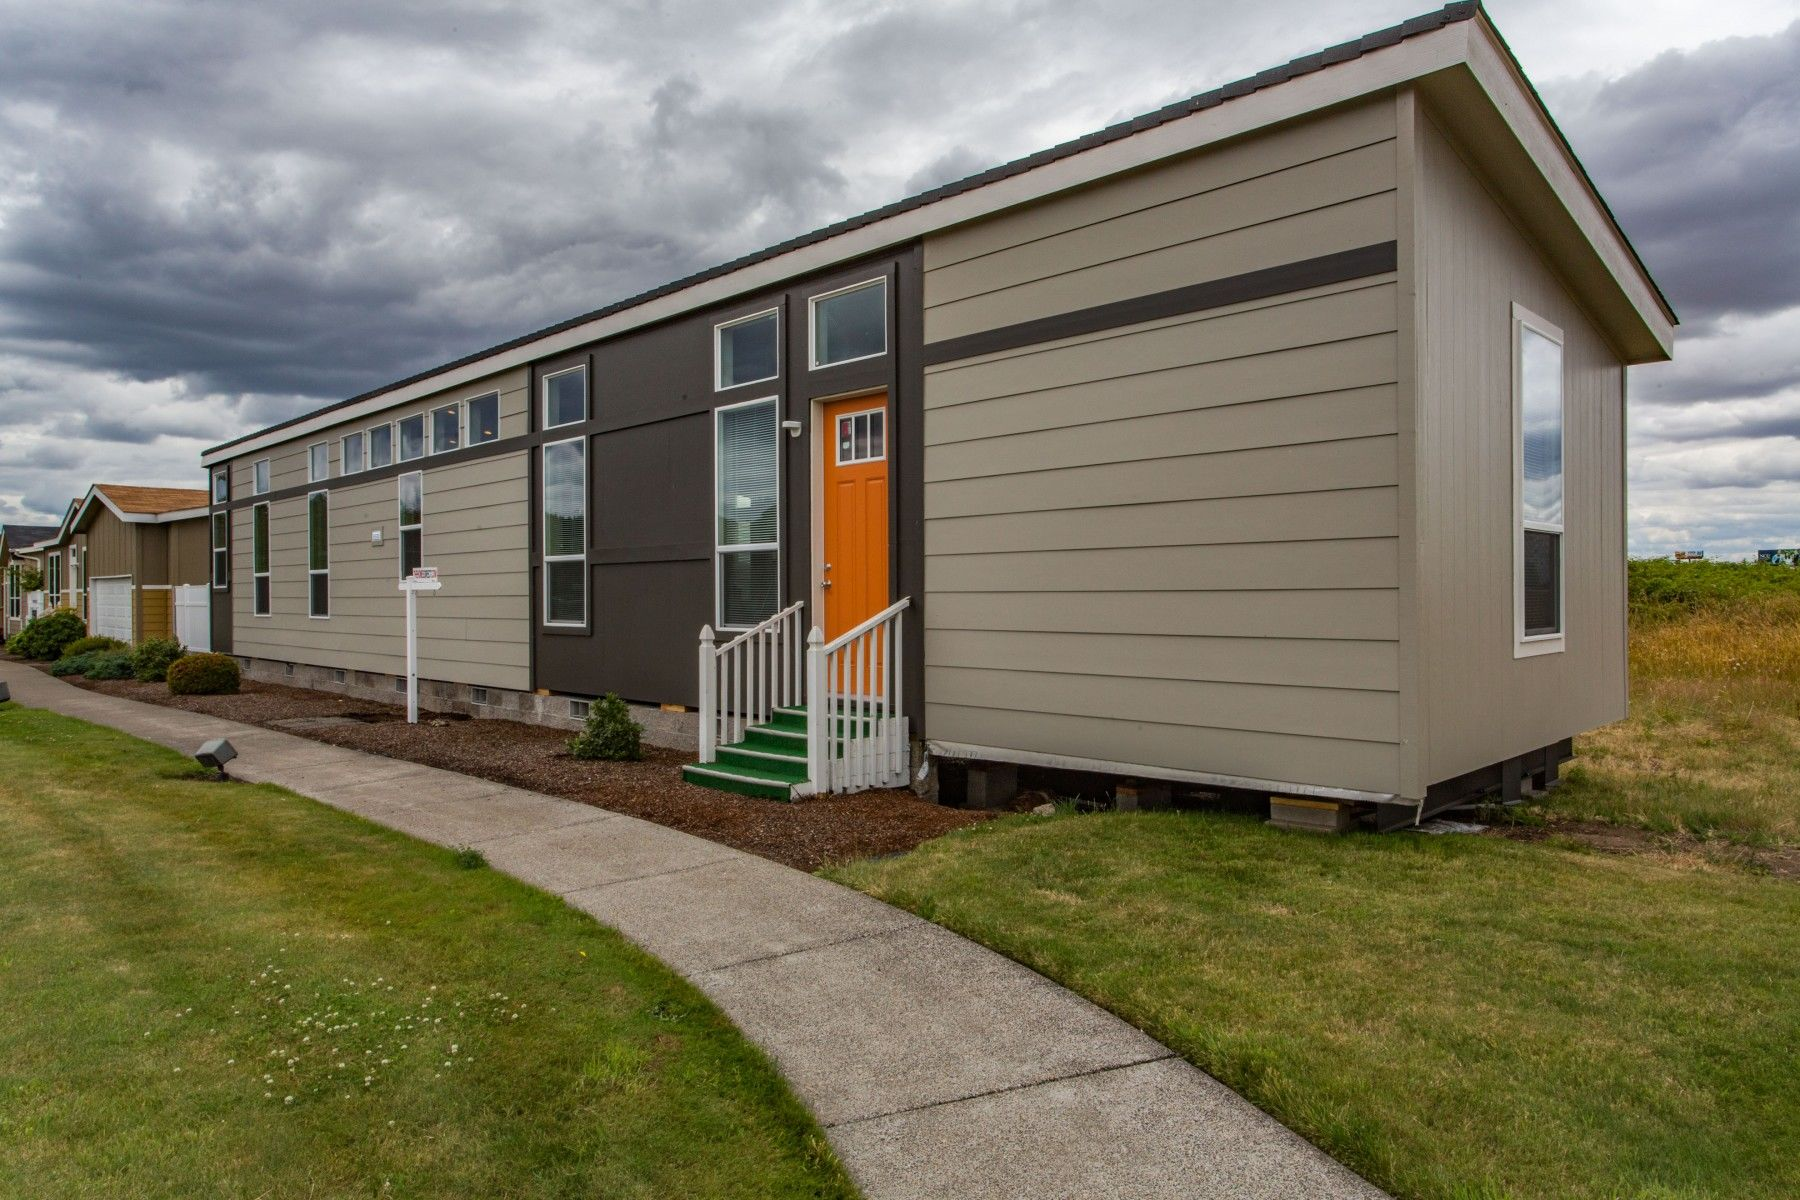 The loft homes direct for Modular homes with lofts